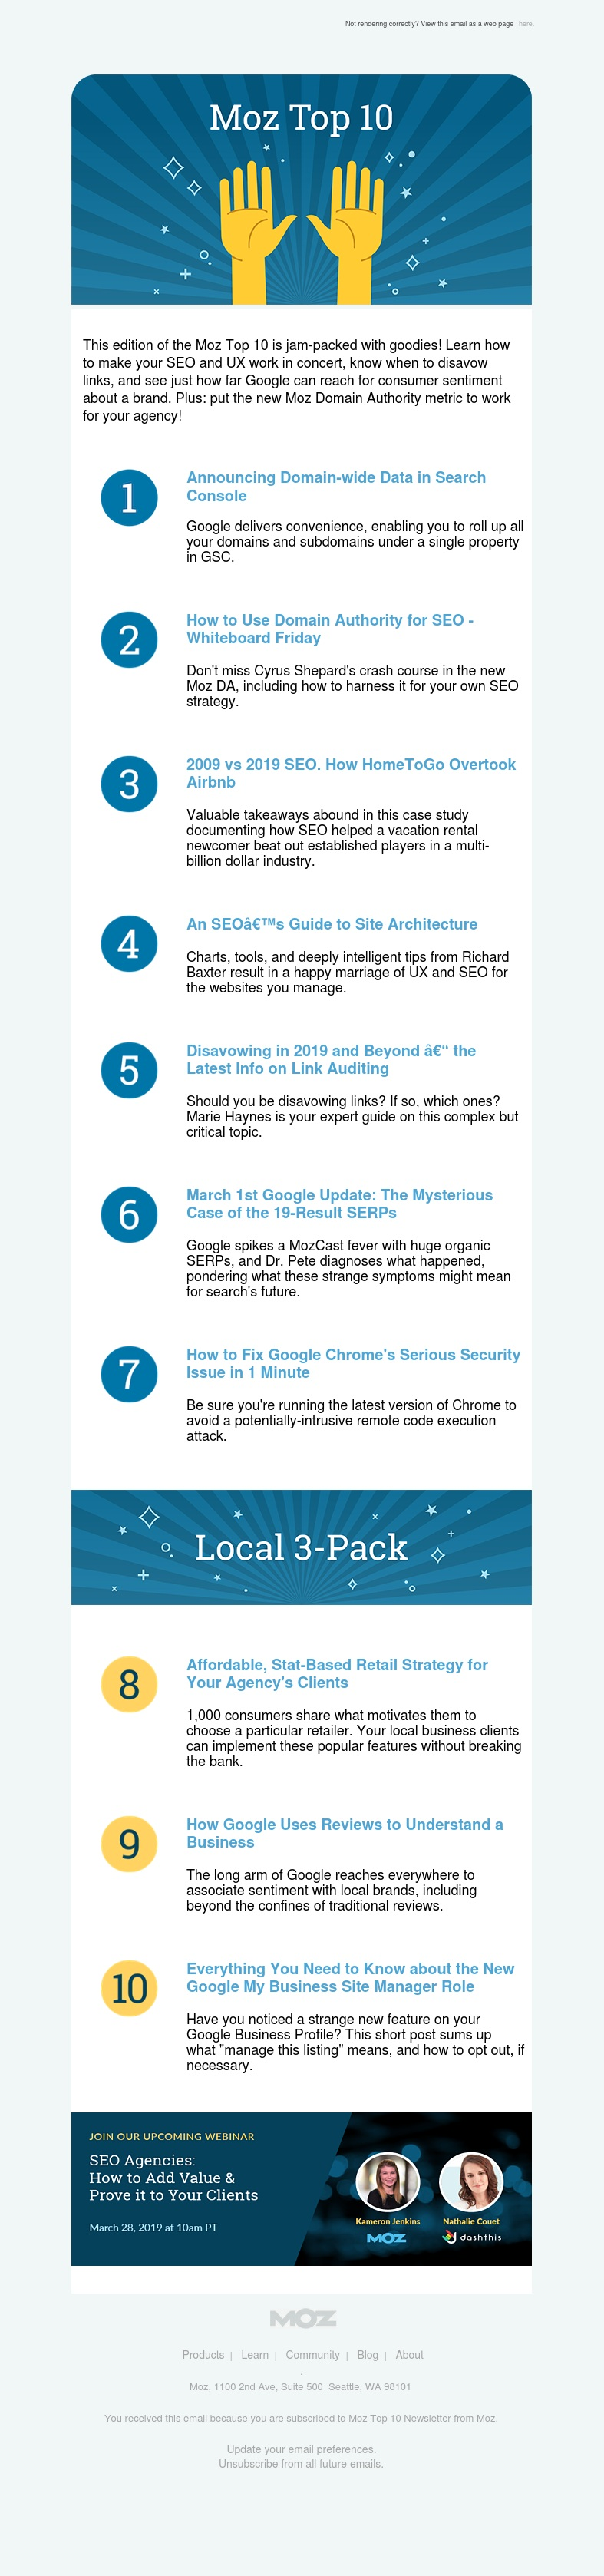 The New Moz Domain Authority + The March 1st Google Update